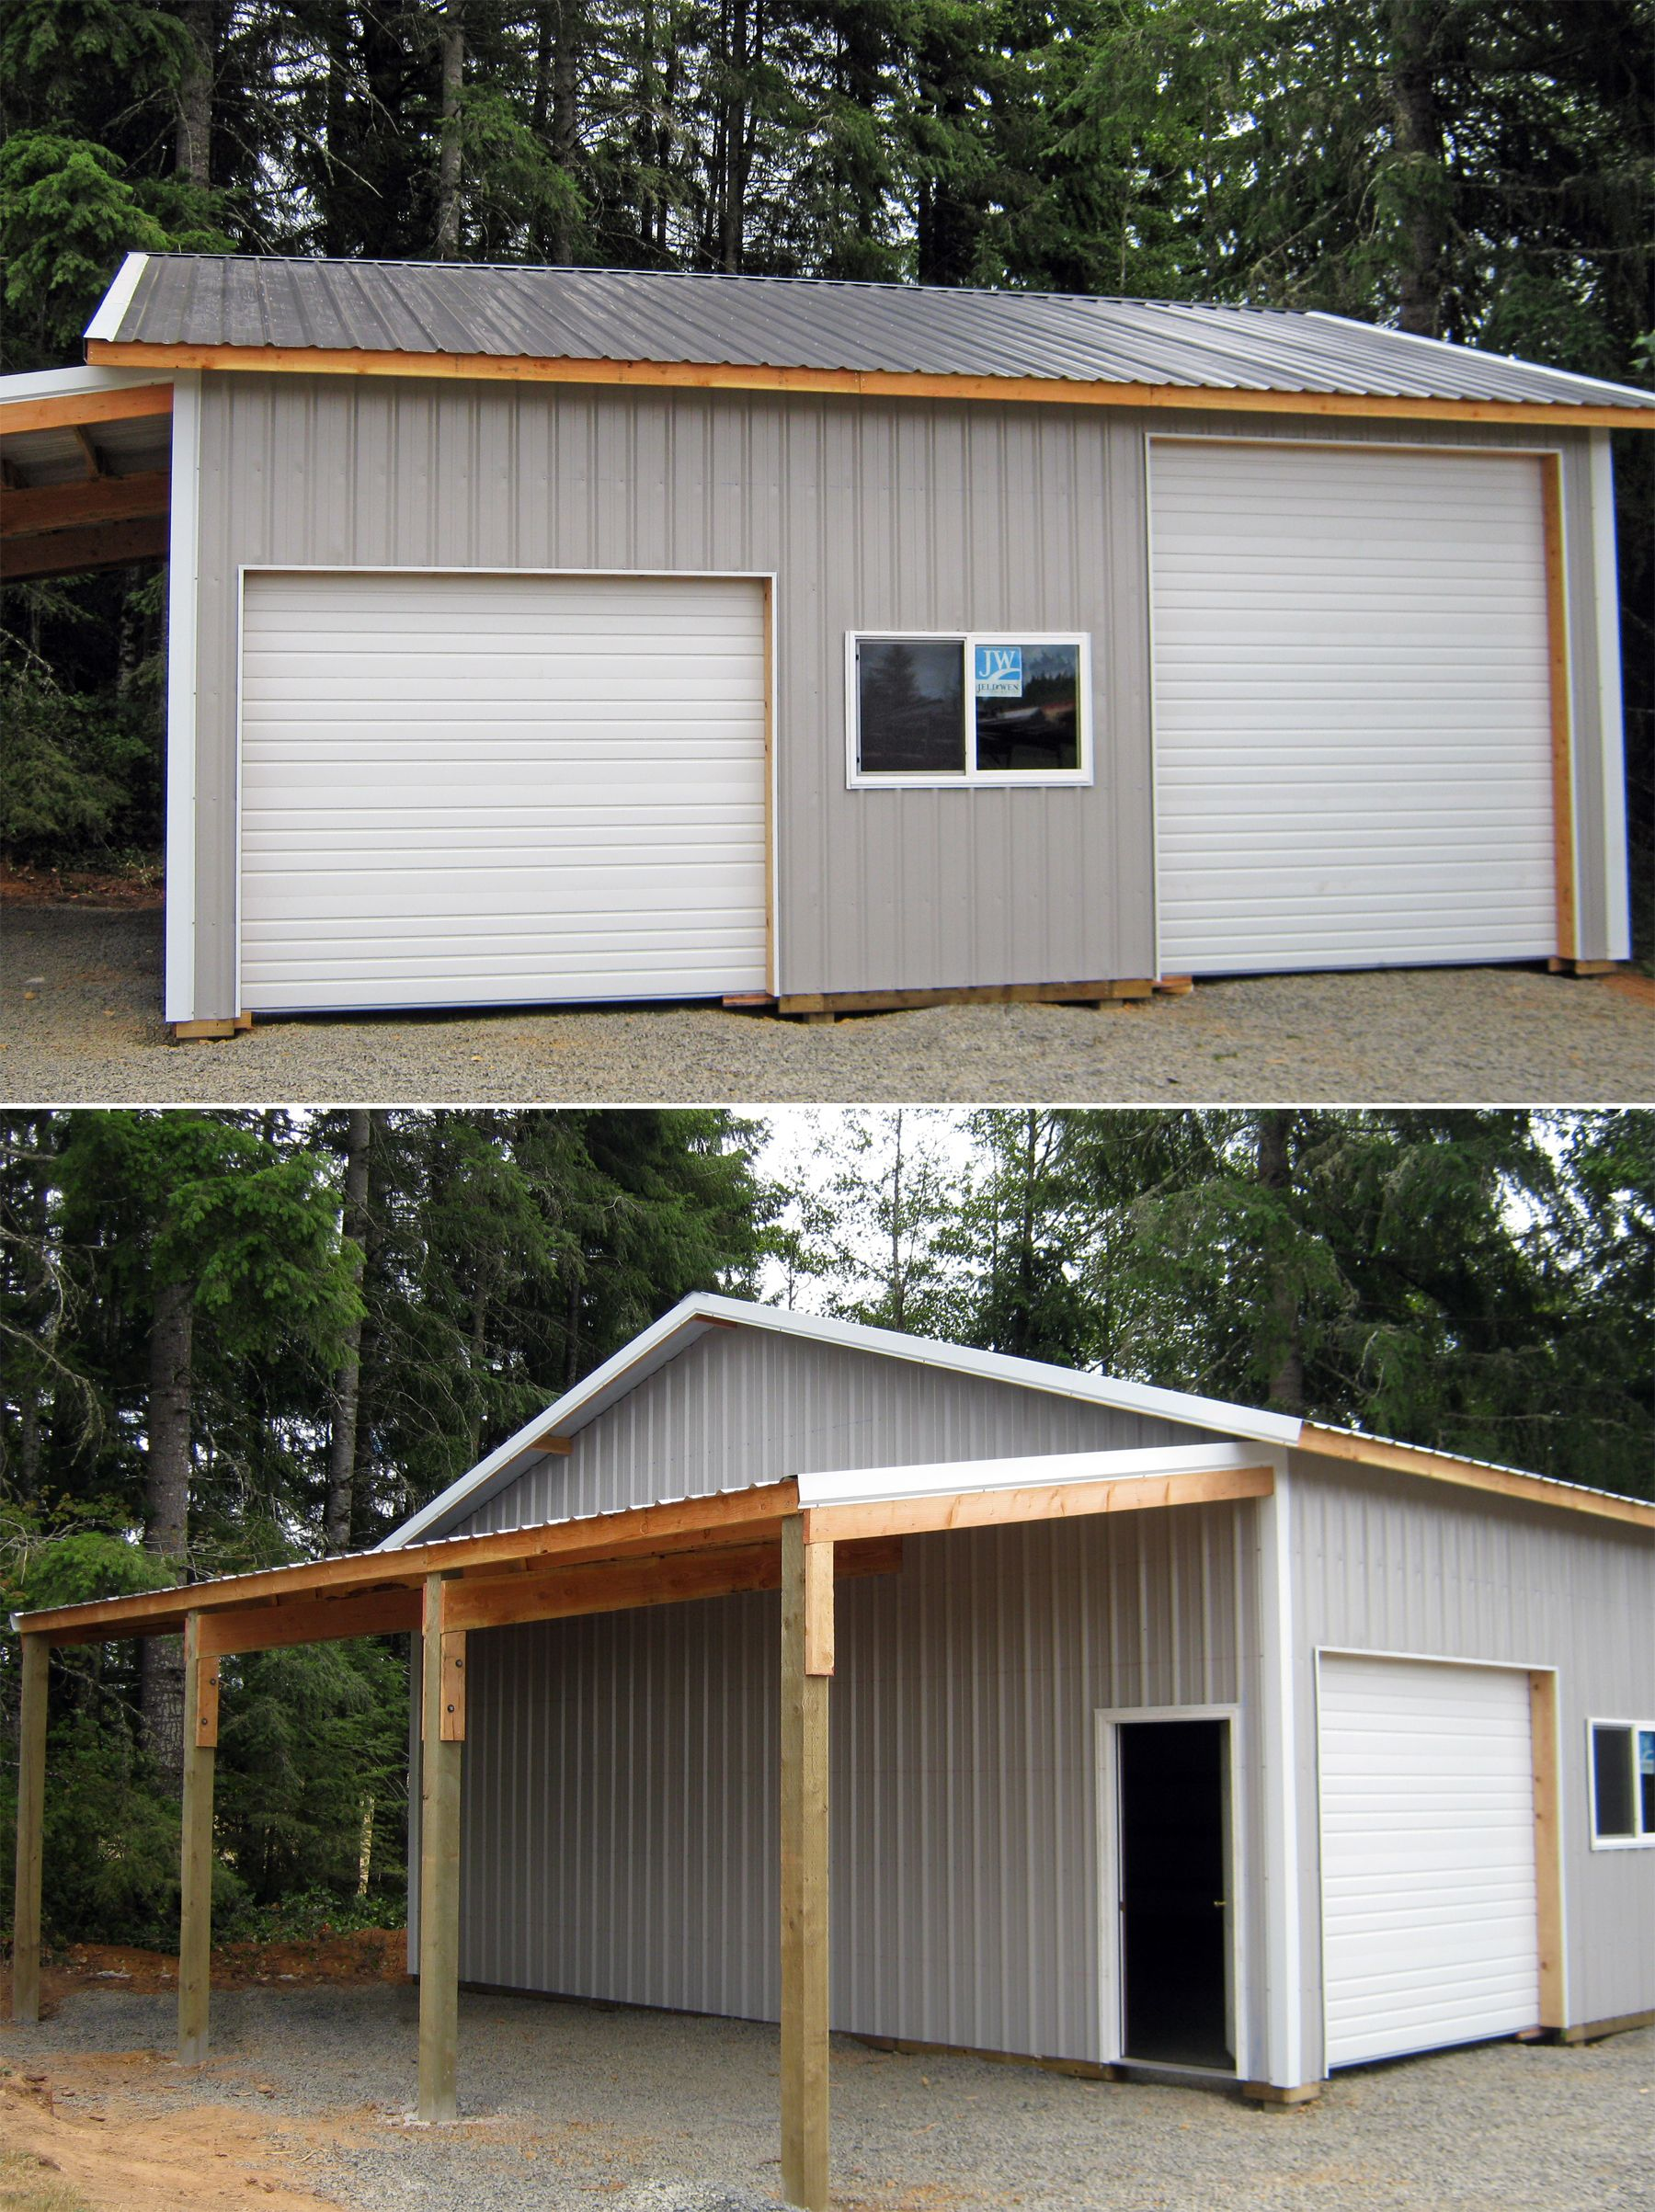 30 X 30 X 12 With 12 X 30 Roof Only Lean Too Www